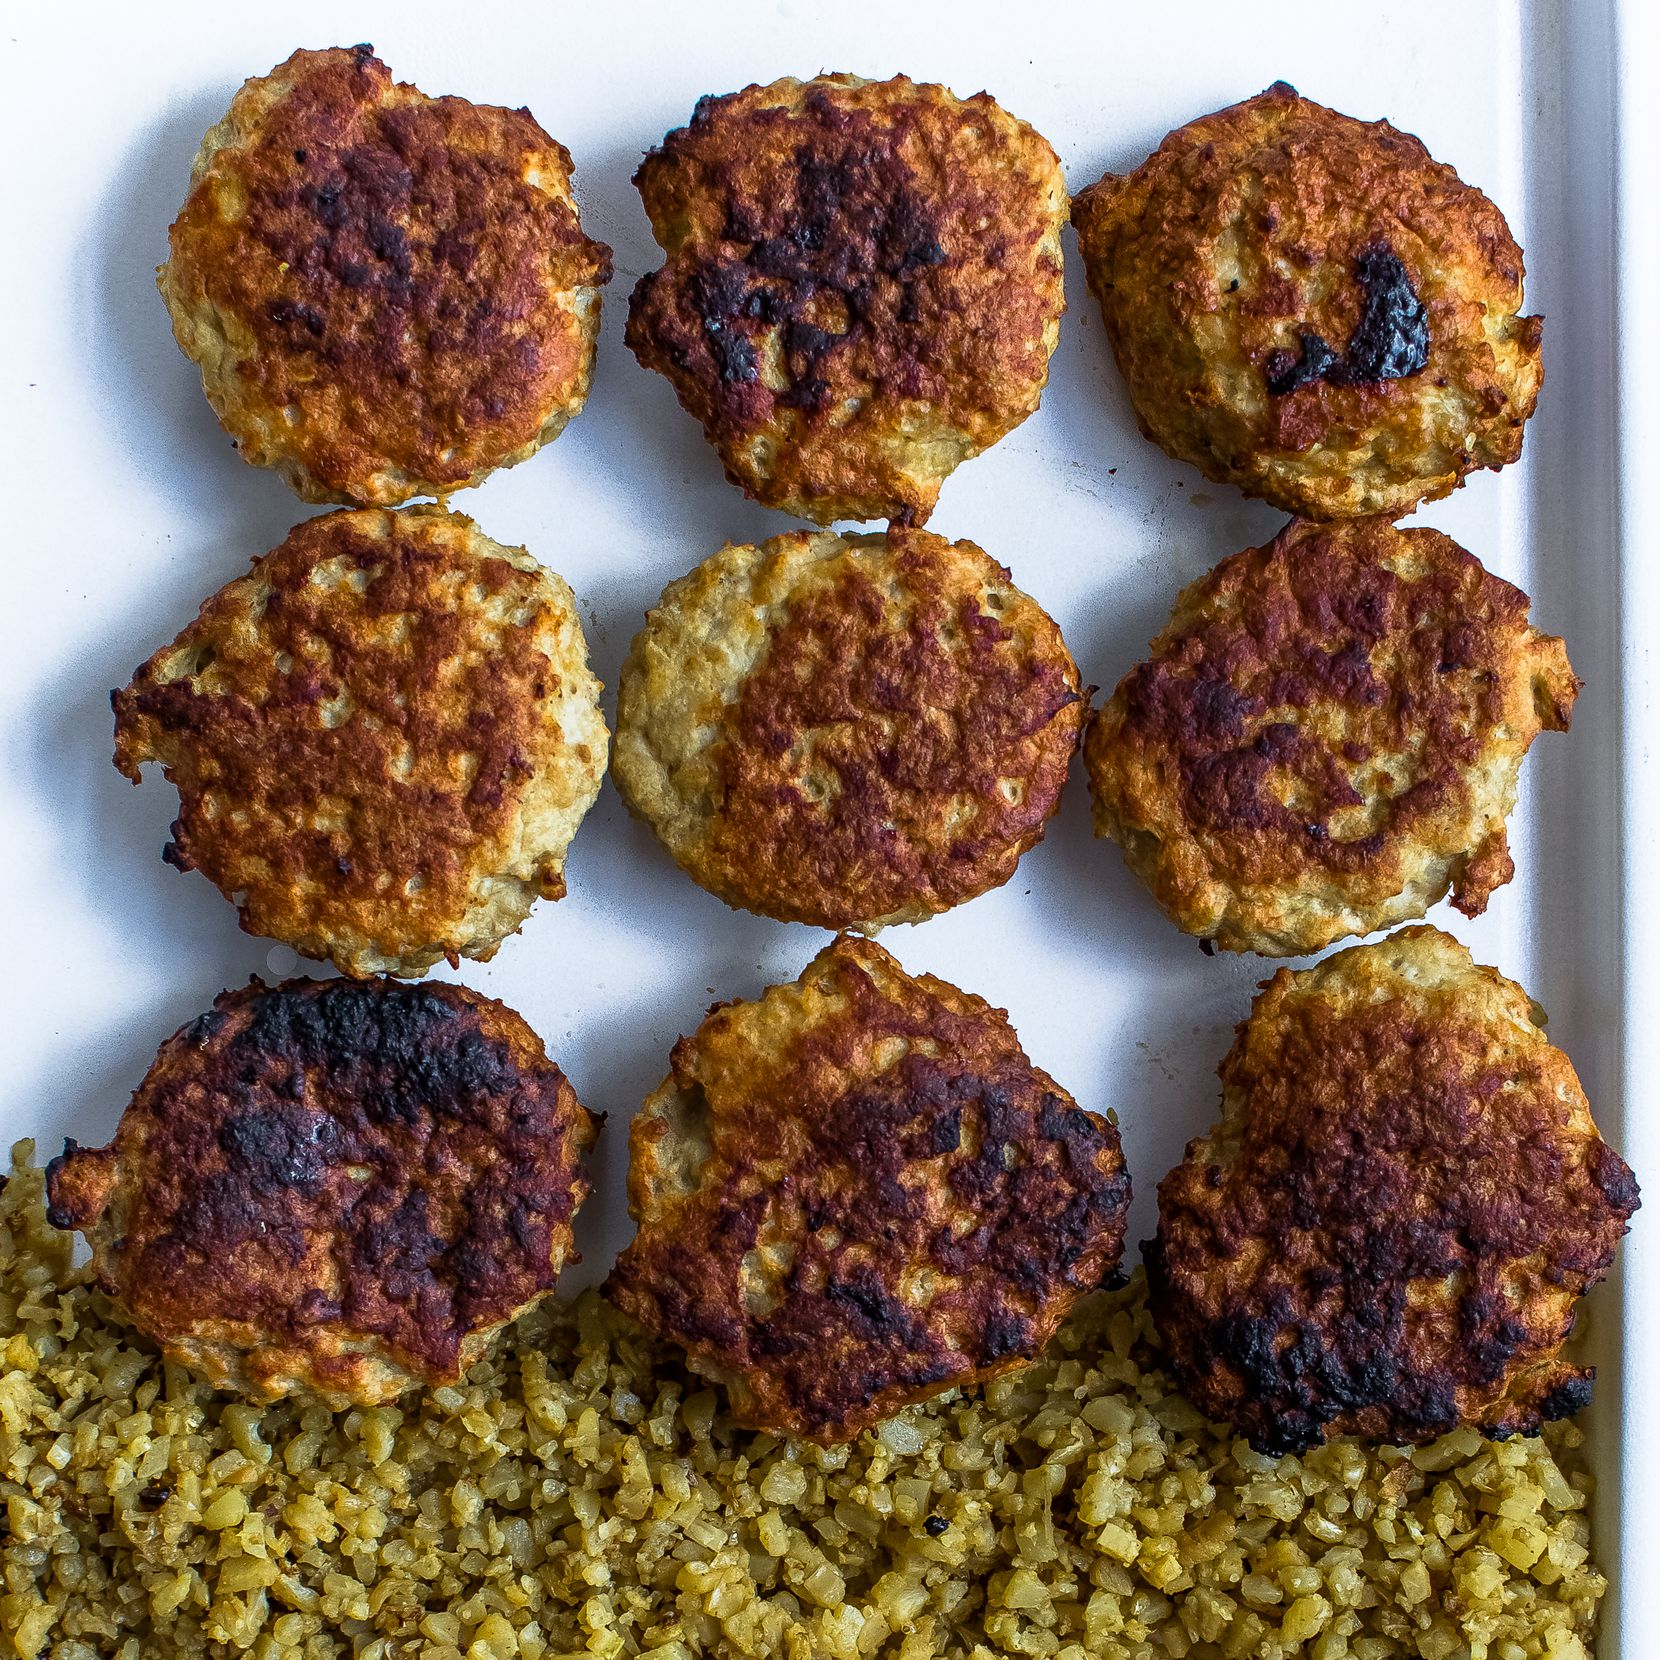 Baked Turkey Patties with Cauliflower Rice is an easy weeknight meal.